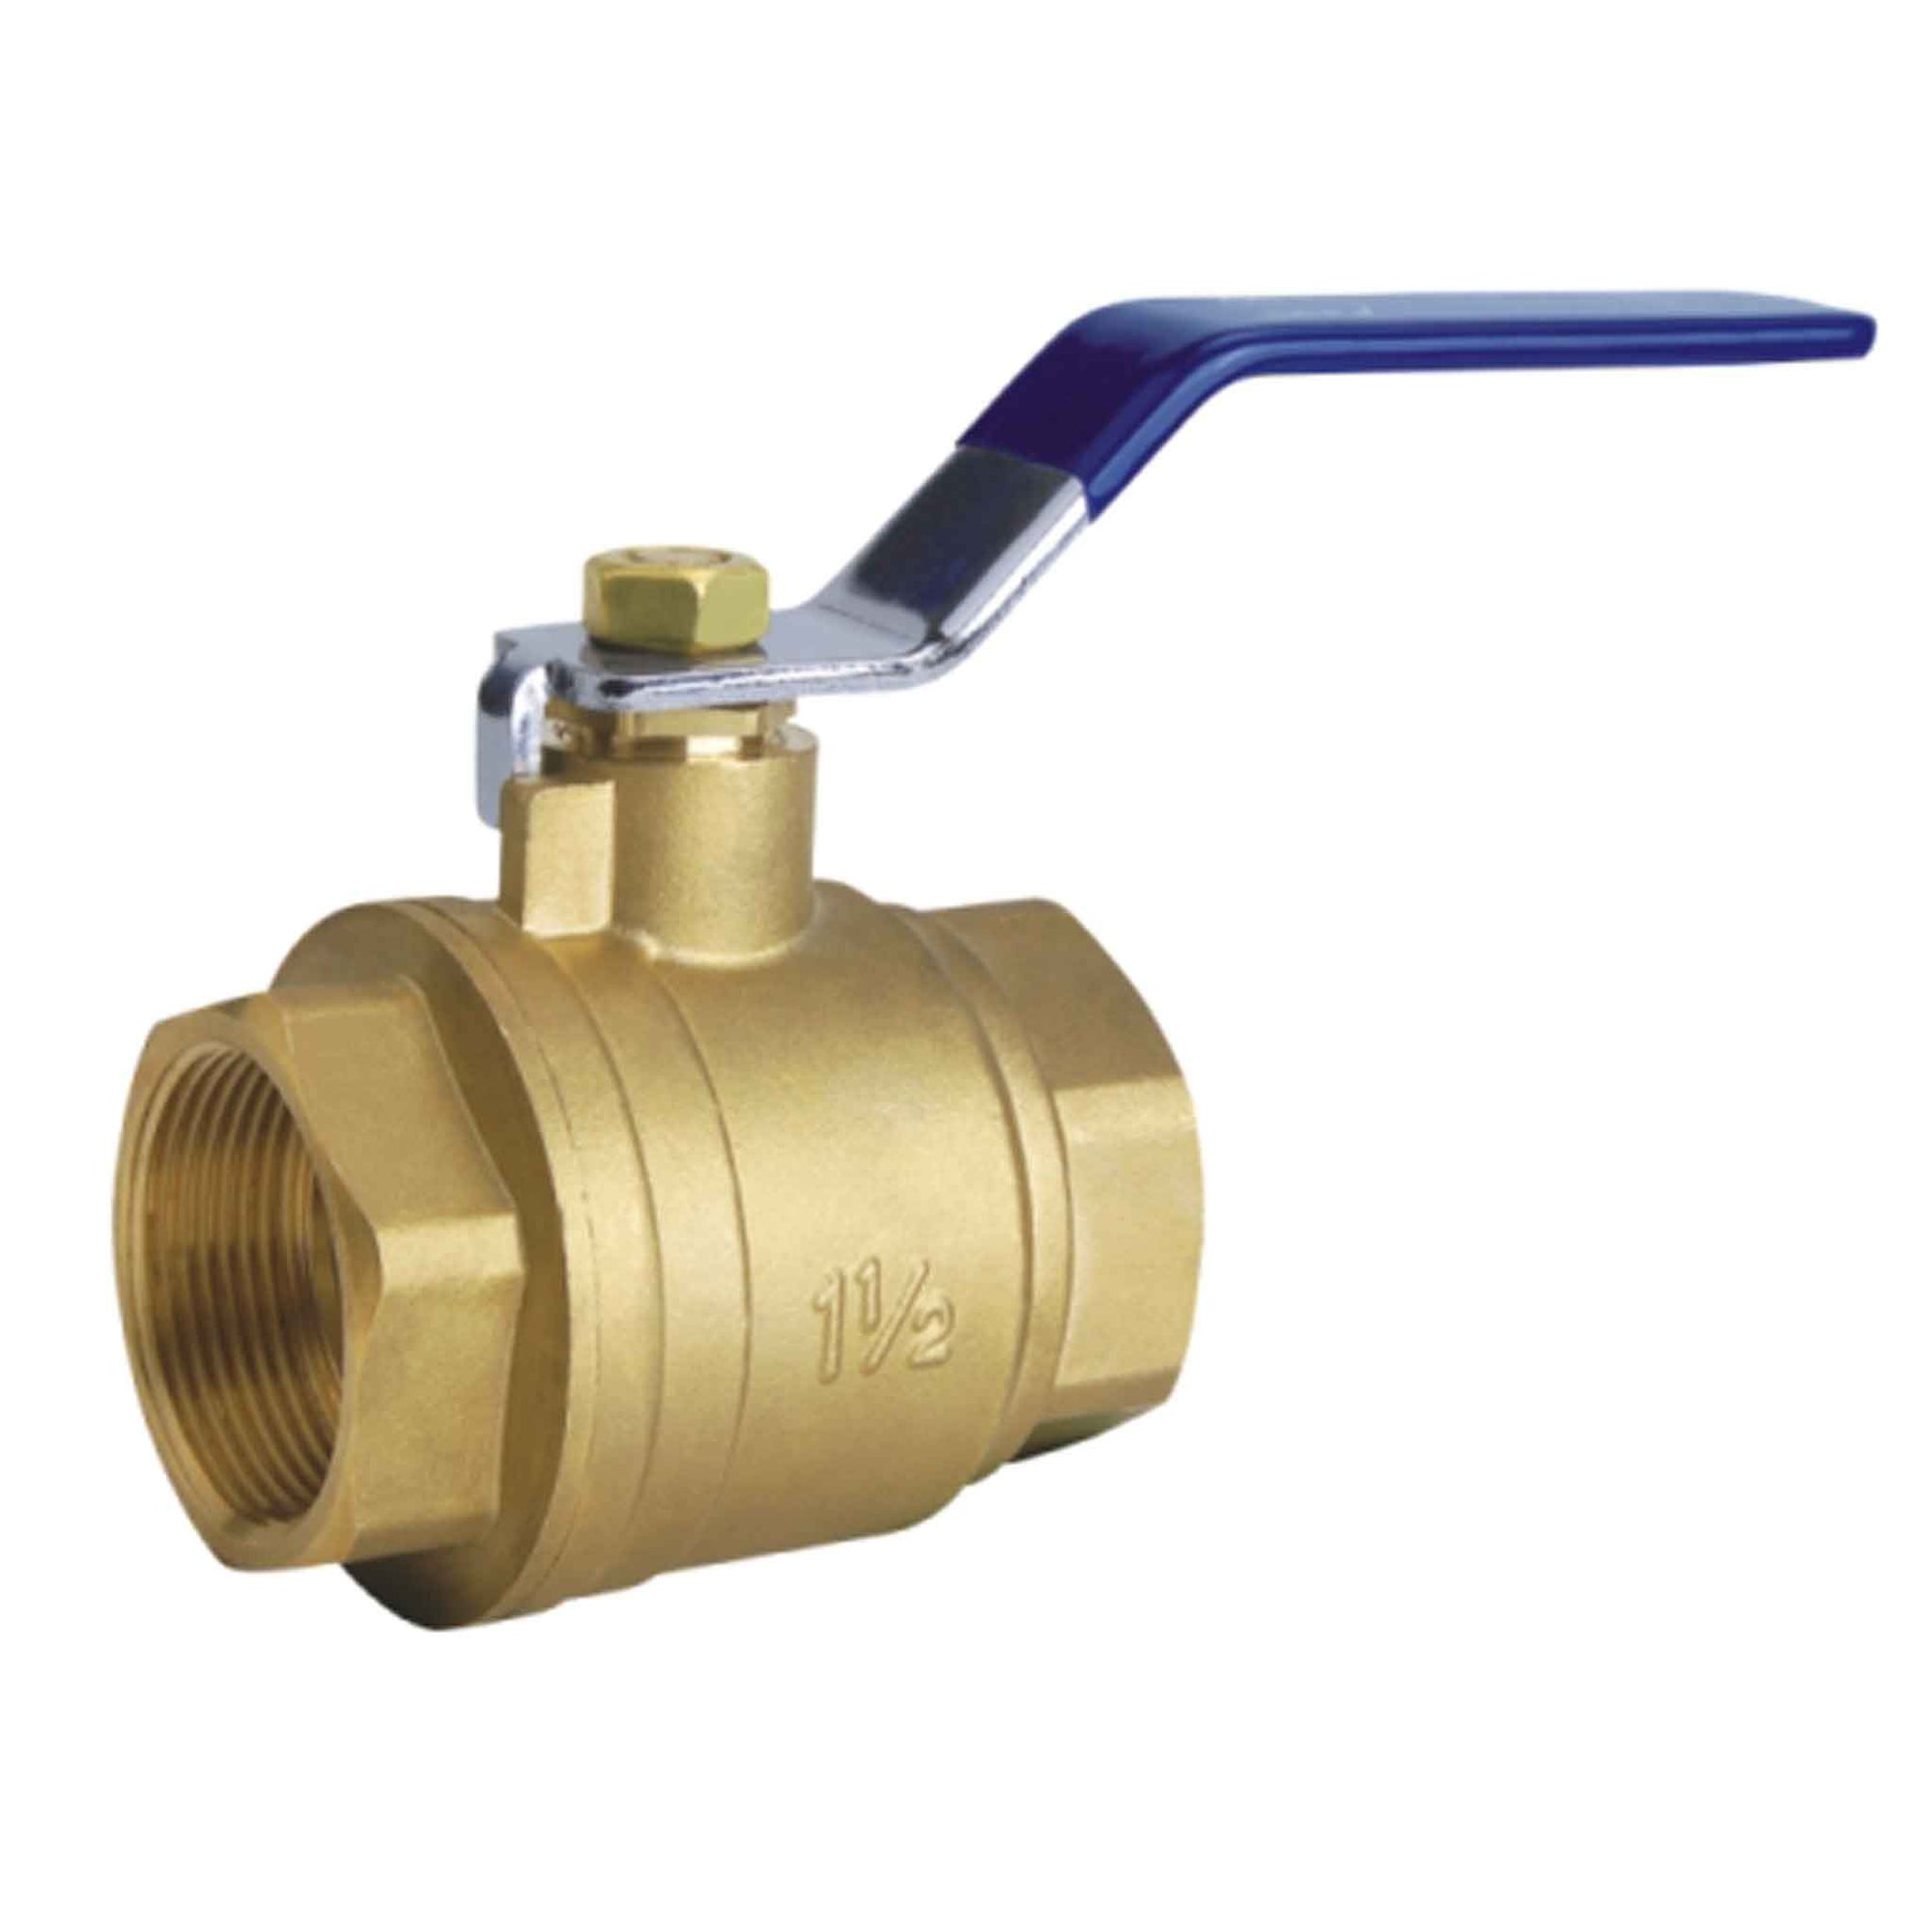 Female Pipe Thread Full Port Ball Valves (Lead Free)